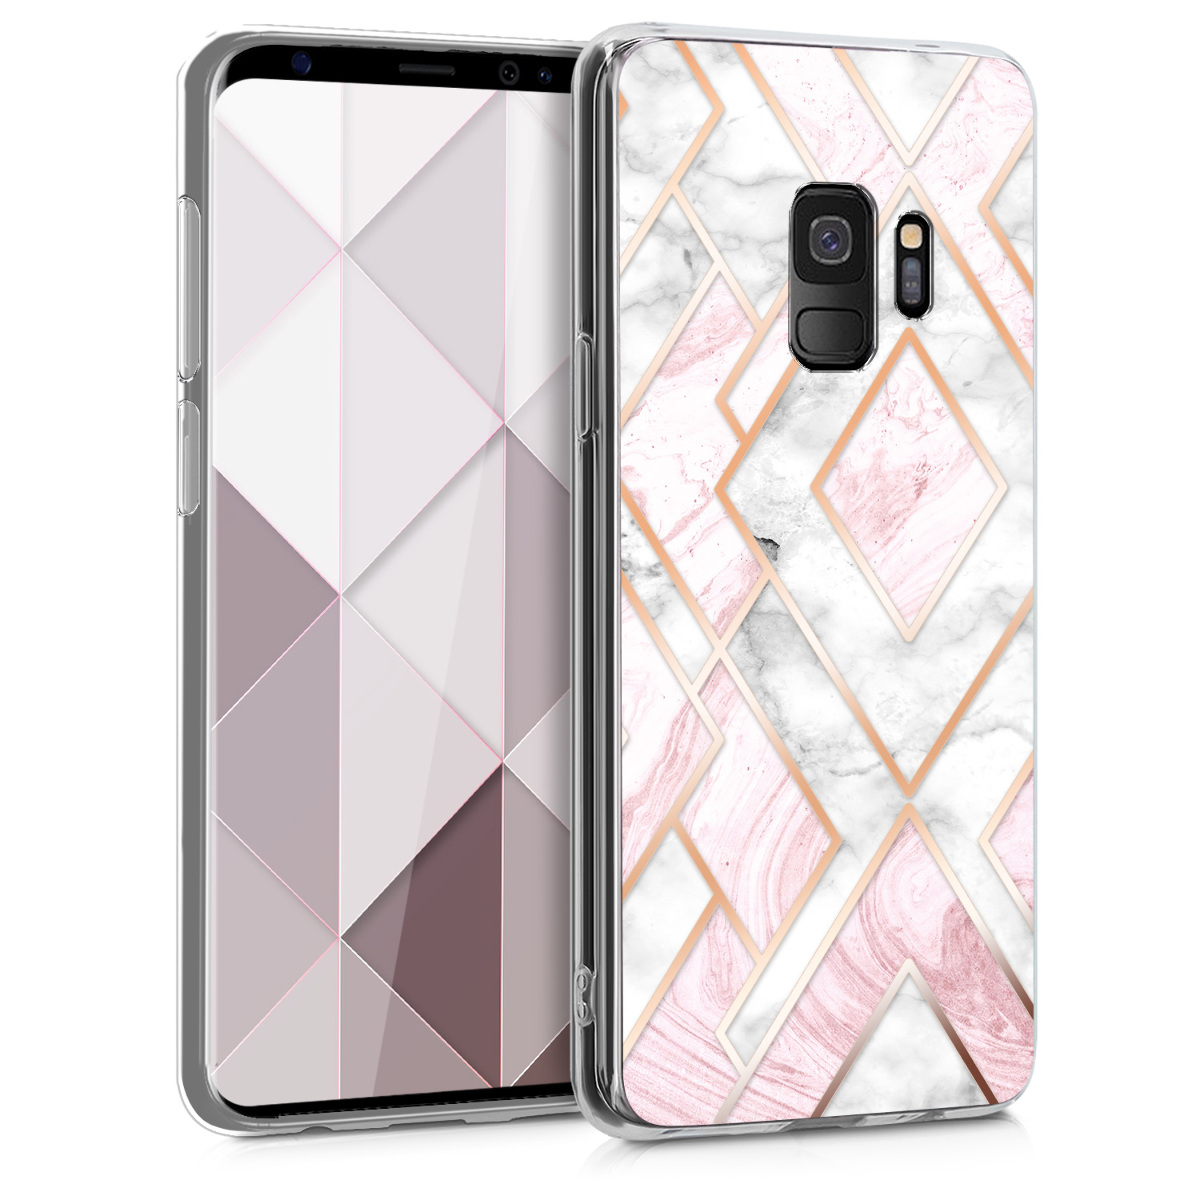 Pouzdro  pro Samsung Galaxy S9 - Soft Crystal Clear IMD Design Back Phone Cover - Glory Mix 2 Rose Gold / White / Dusty Pink